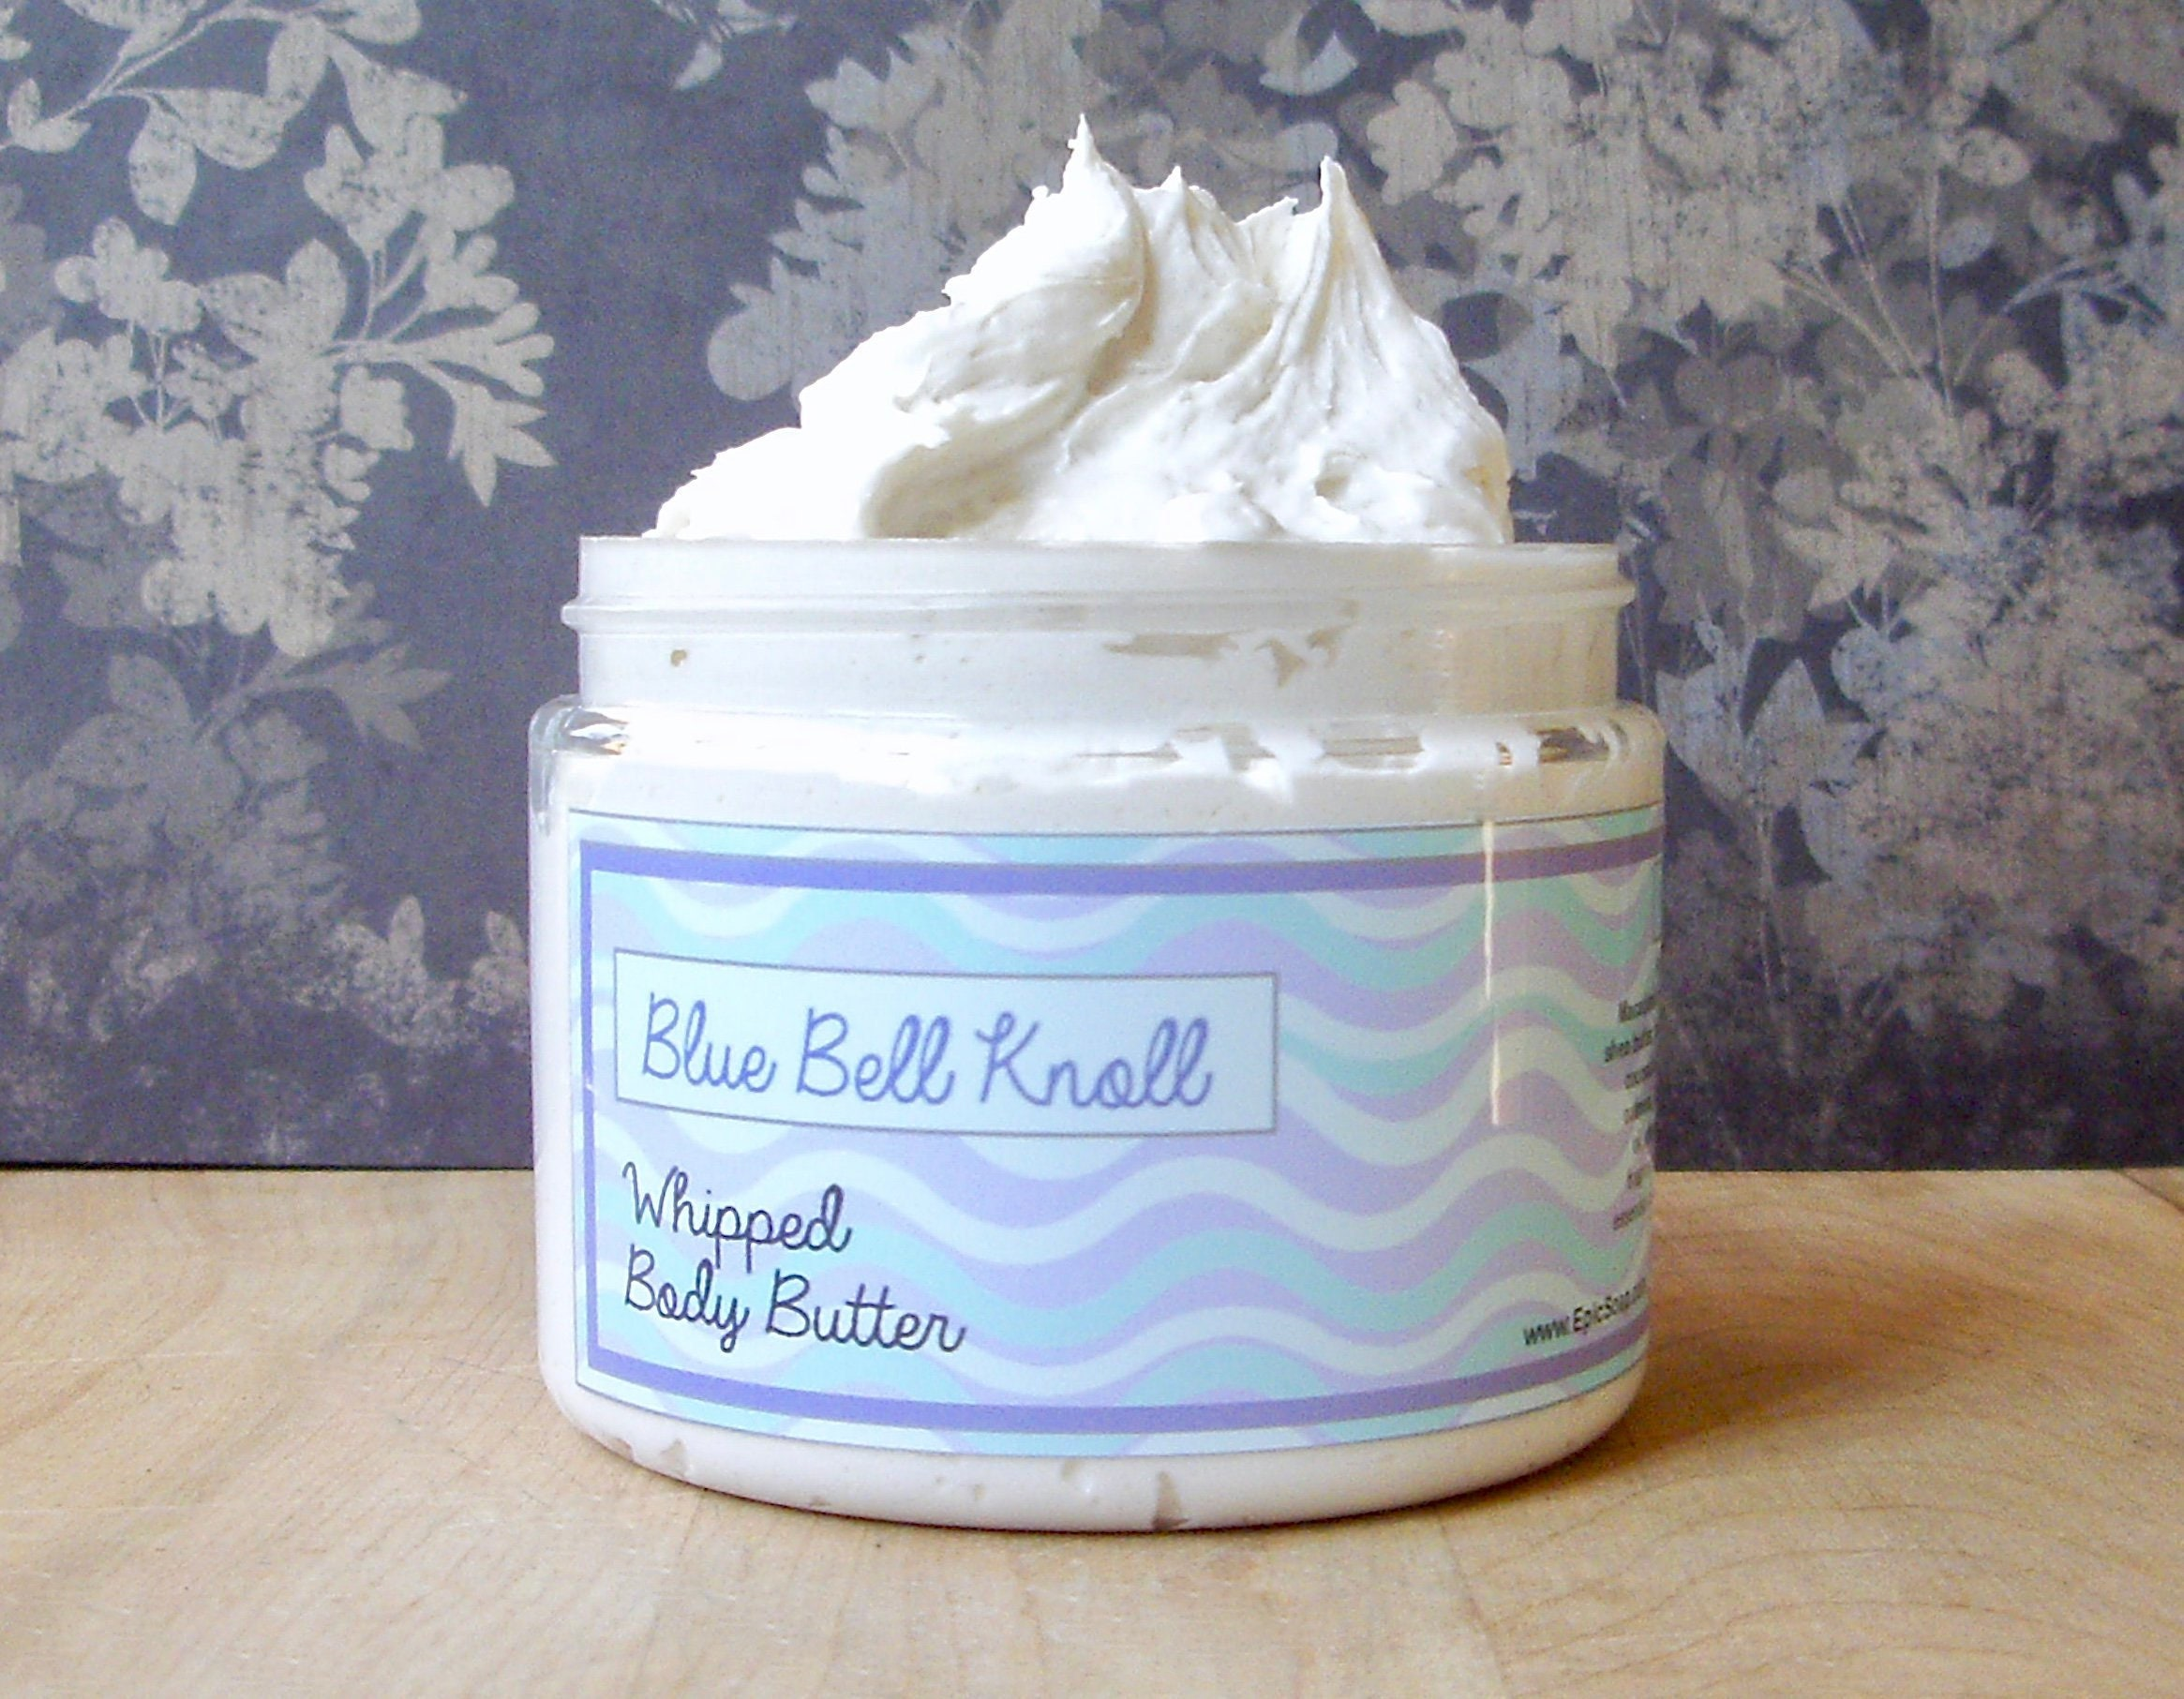 Blue,Bell,Knoll,Whipped,Body,Butter,Bath_And_Beauty,hand_cream,body_butter,vegan,vegan_lotion,epically_epic,whipped_body_butter,whipped_shea_butter,body_cream,vegan_body_butter,spring_collection,bluebell_lotion,bluebell_scent,blueberry_vanilla,macadamia butter,jojoba,olive squalane,fragranc